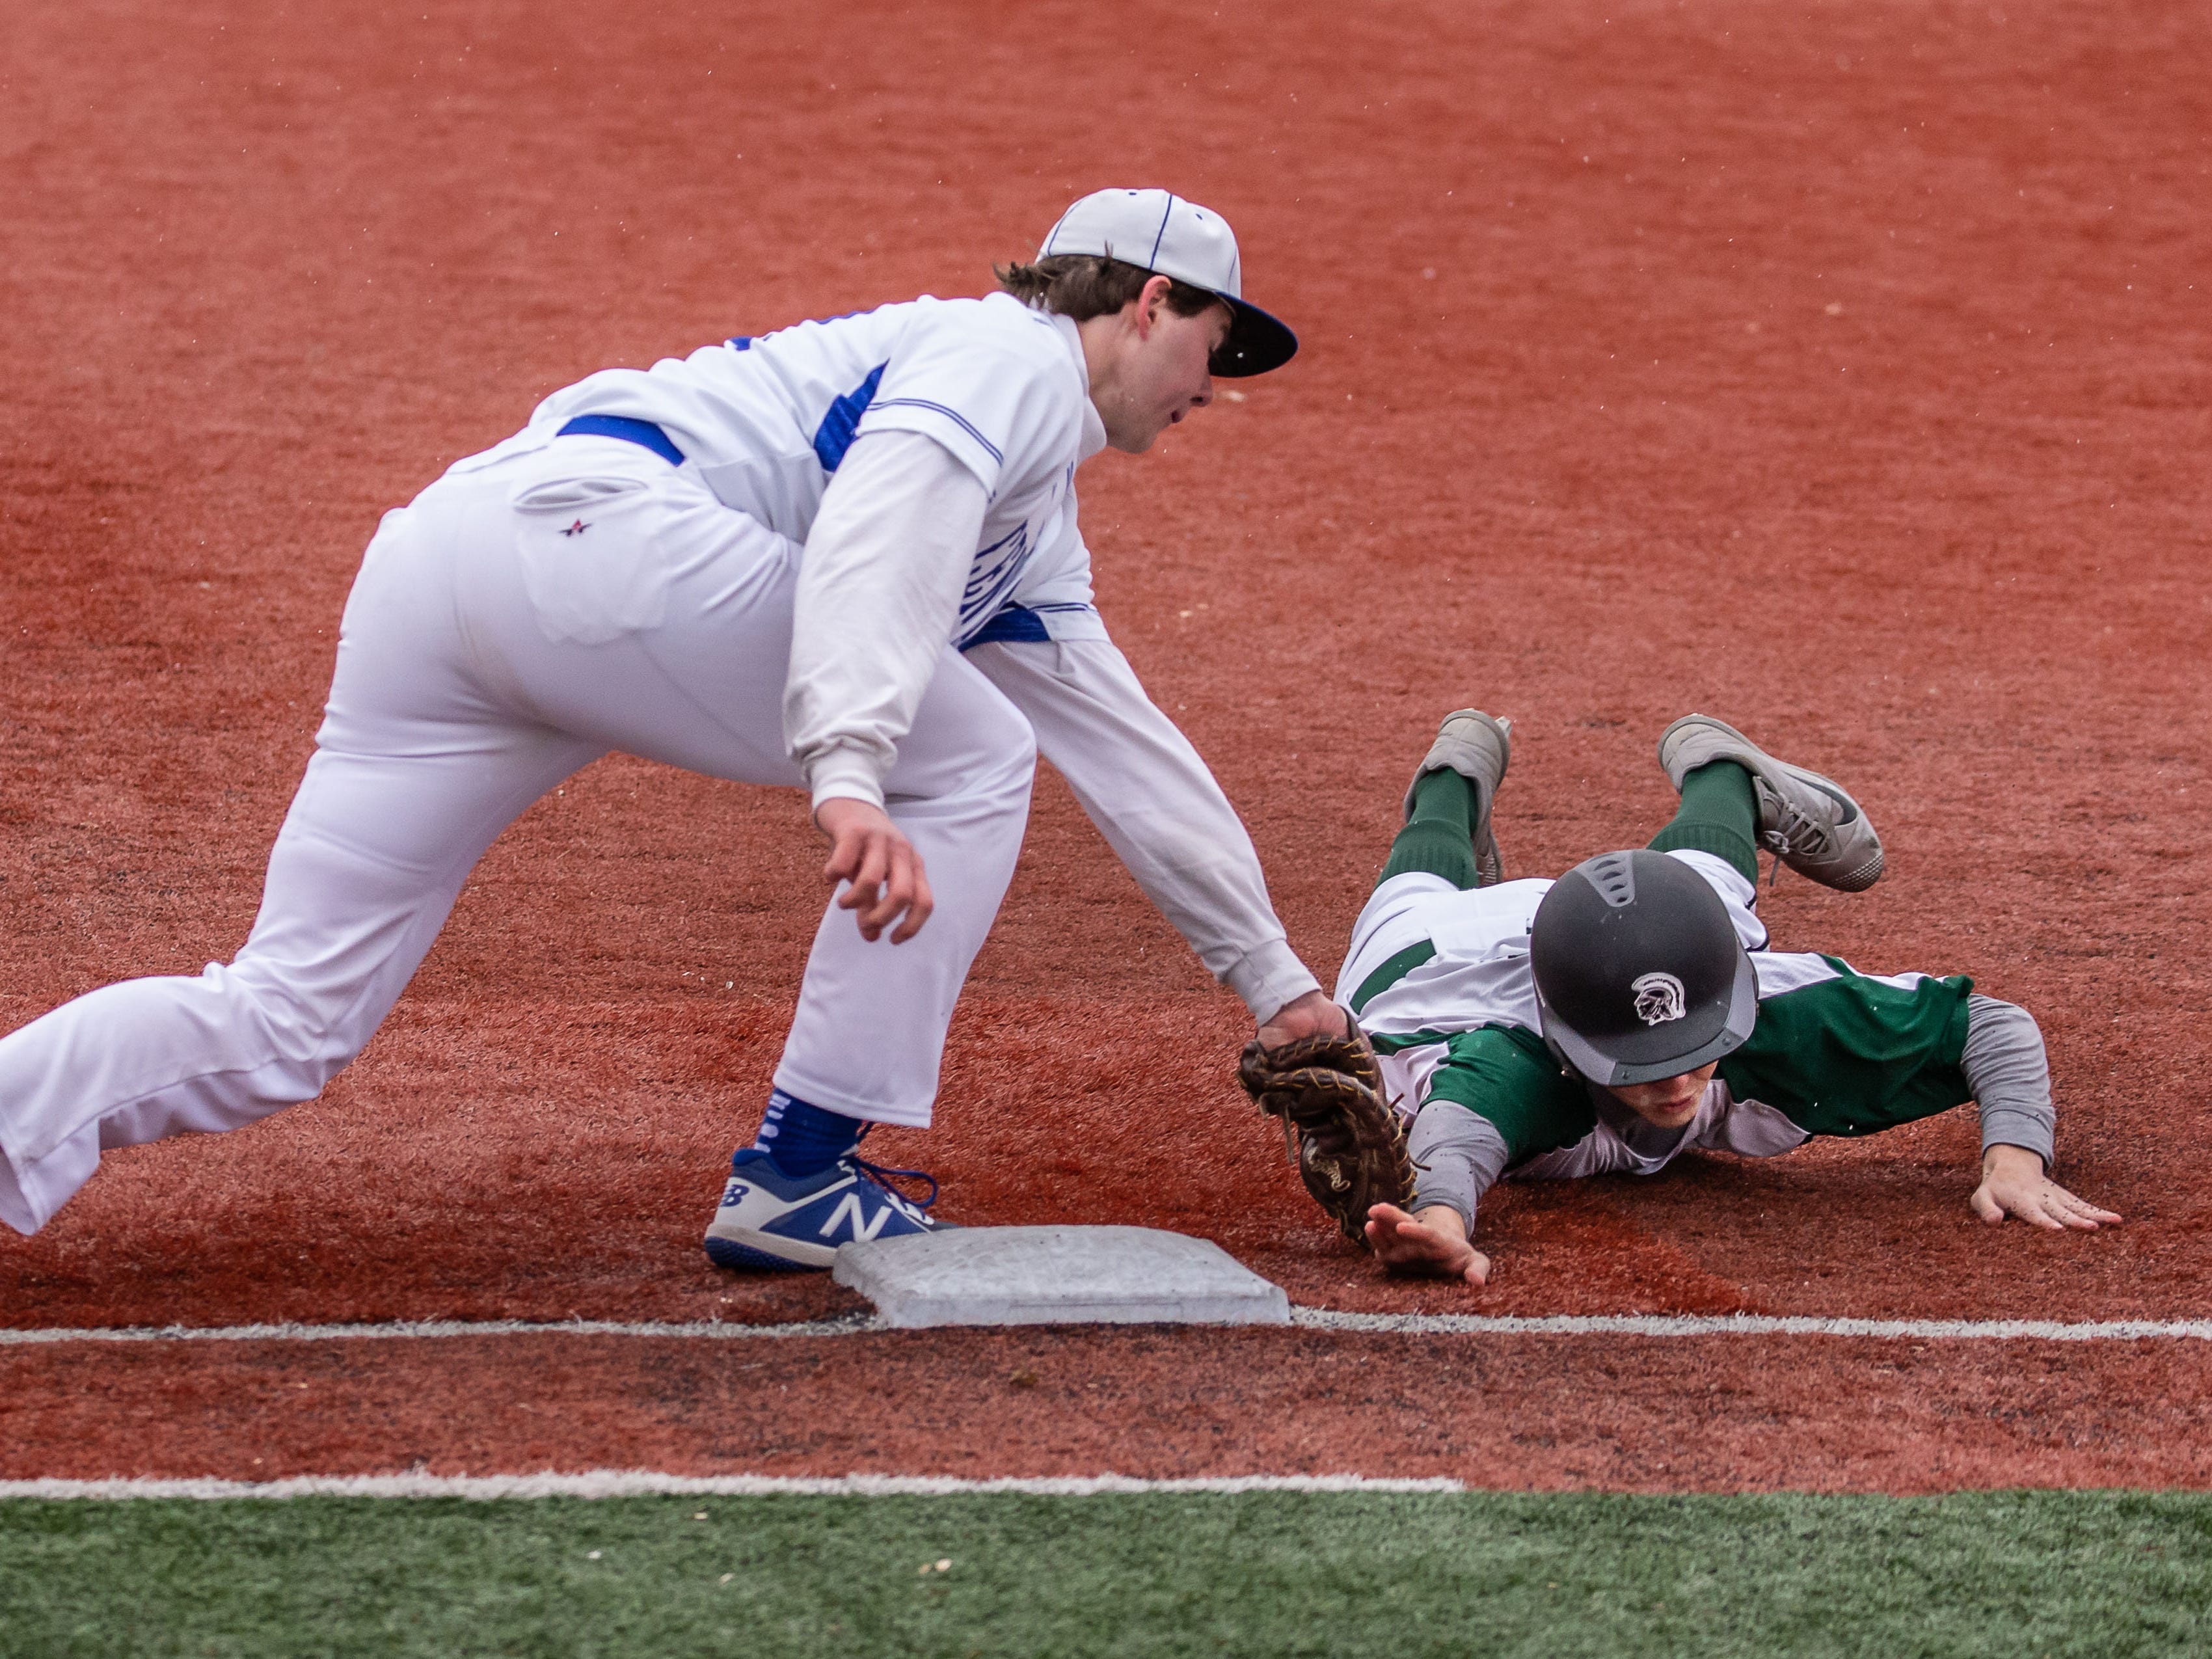 Brookfield Central first baseman Luke Schmidt (22) tags out Wauwatosa West's Will Baran (7) during the game at Brookfield Central on Thursday, April 4, 2019.